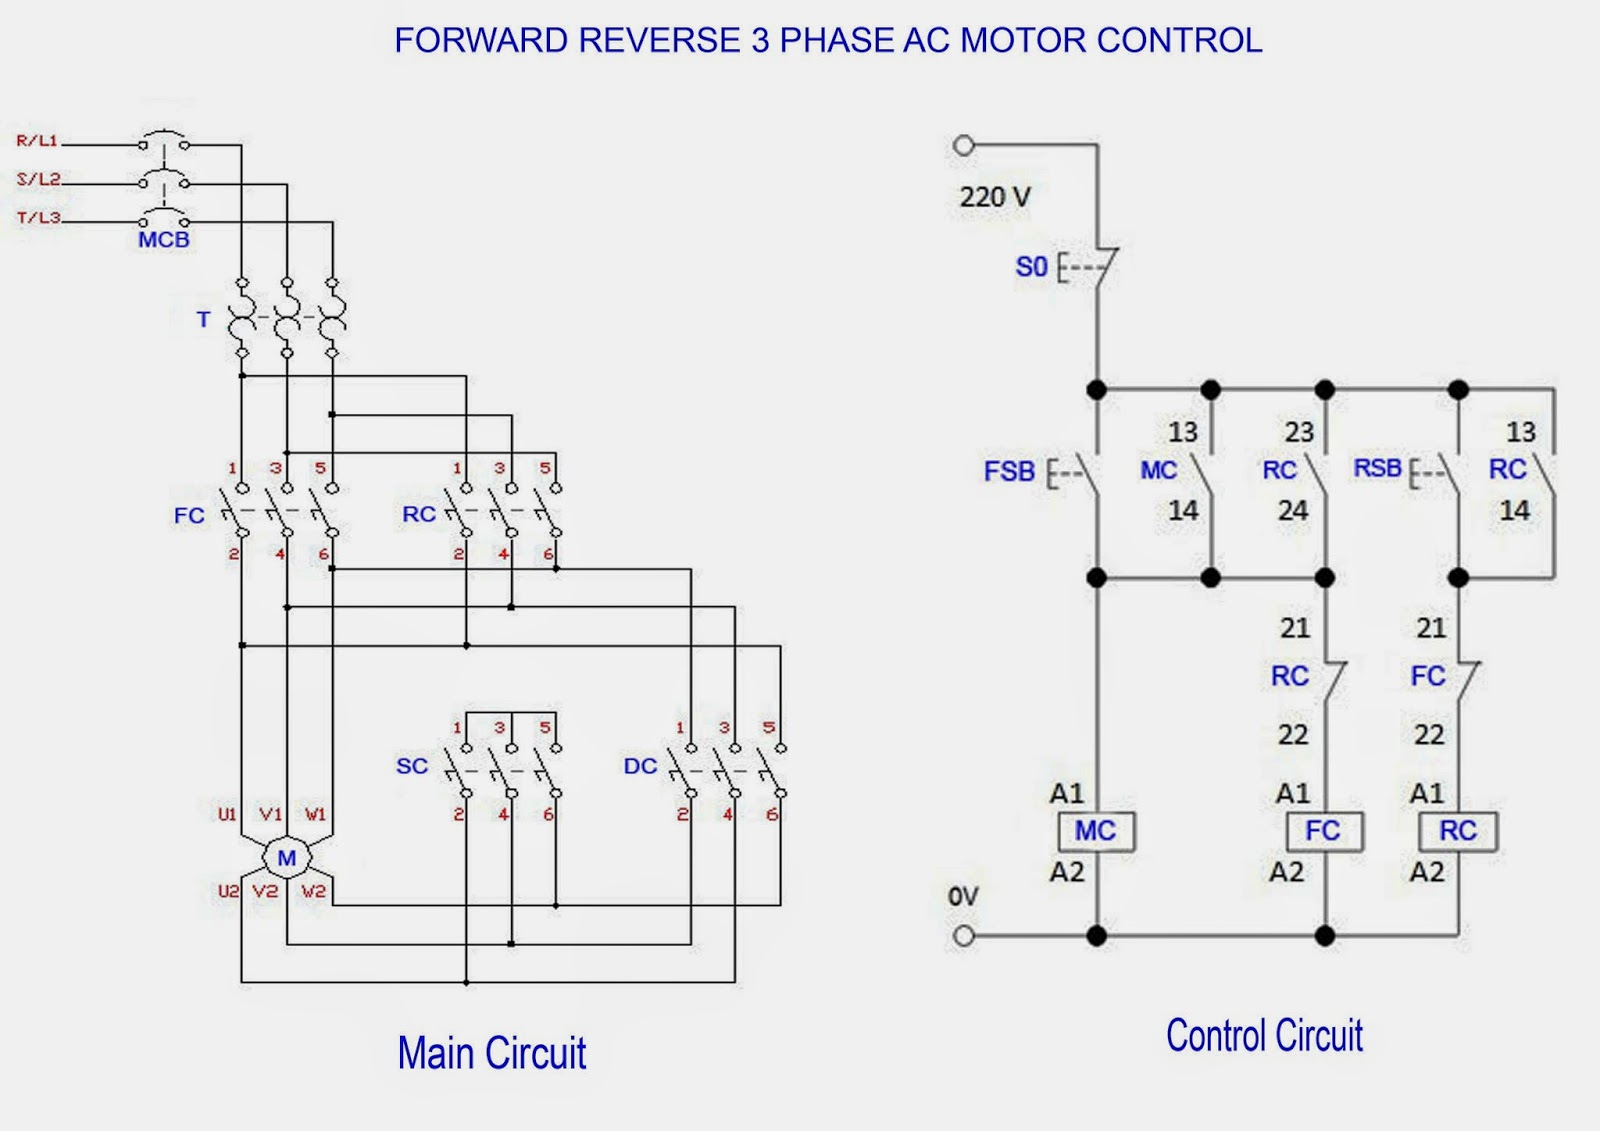 3 Phase Motor Wiring Diagram 9 Wire With Thermol | Wiring Liry on